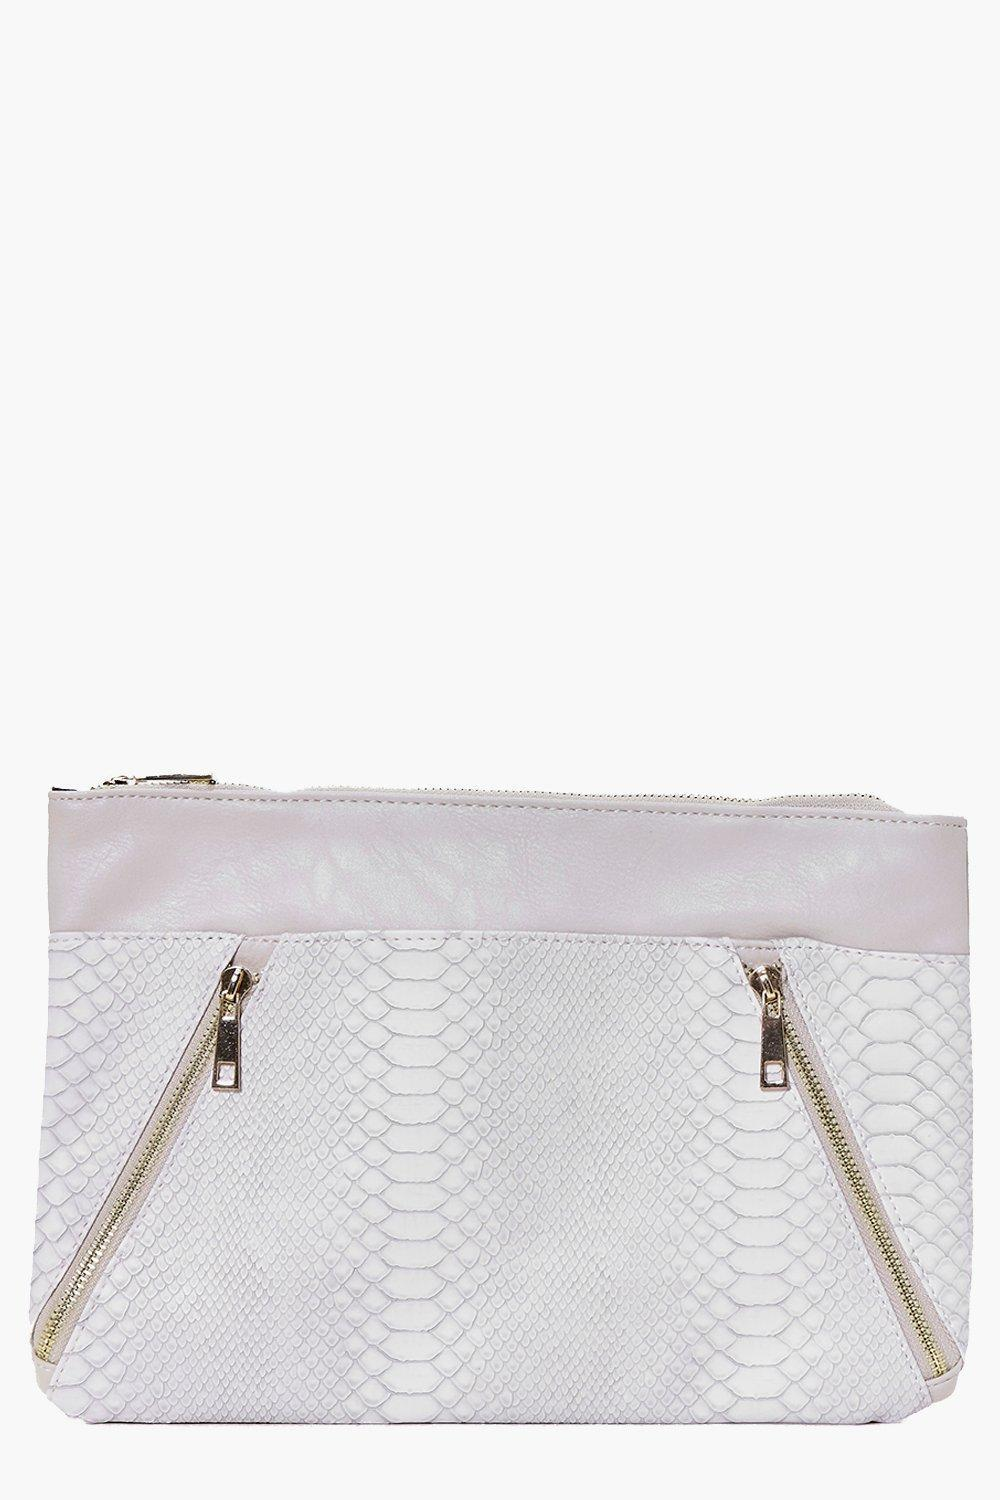 Zip Detail Contrast Panel Clutch Bag Grey - predominant colour: white; occasions: evening; type of pattern: standard; style: clutch; length: hand carry; size: standard; material: faux leather; pattern: plain; finish: plain; season: a/w 2016; wardrobe: event